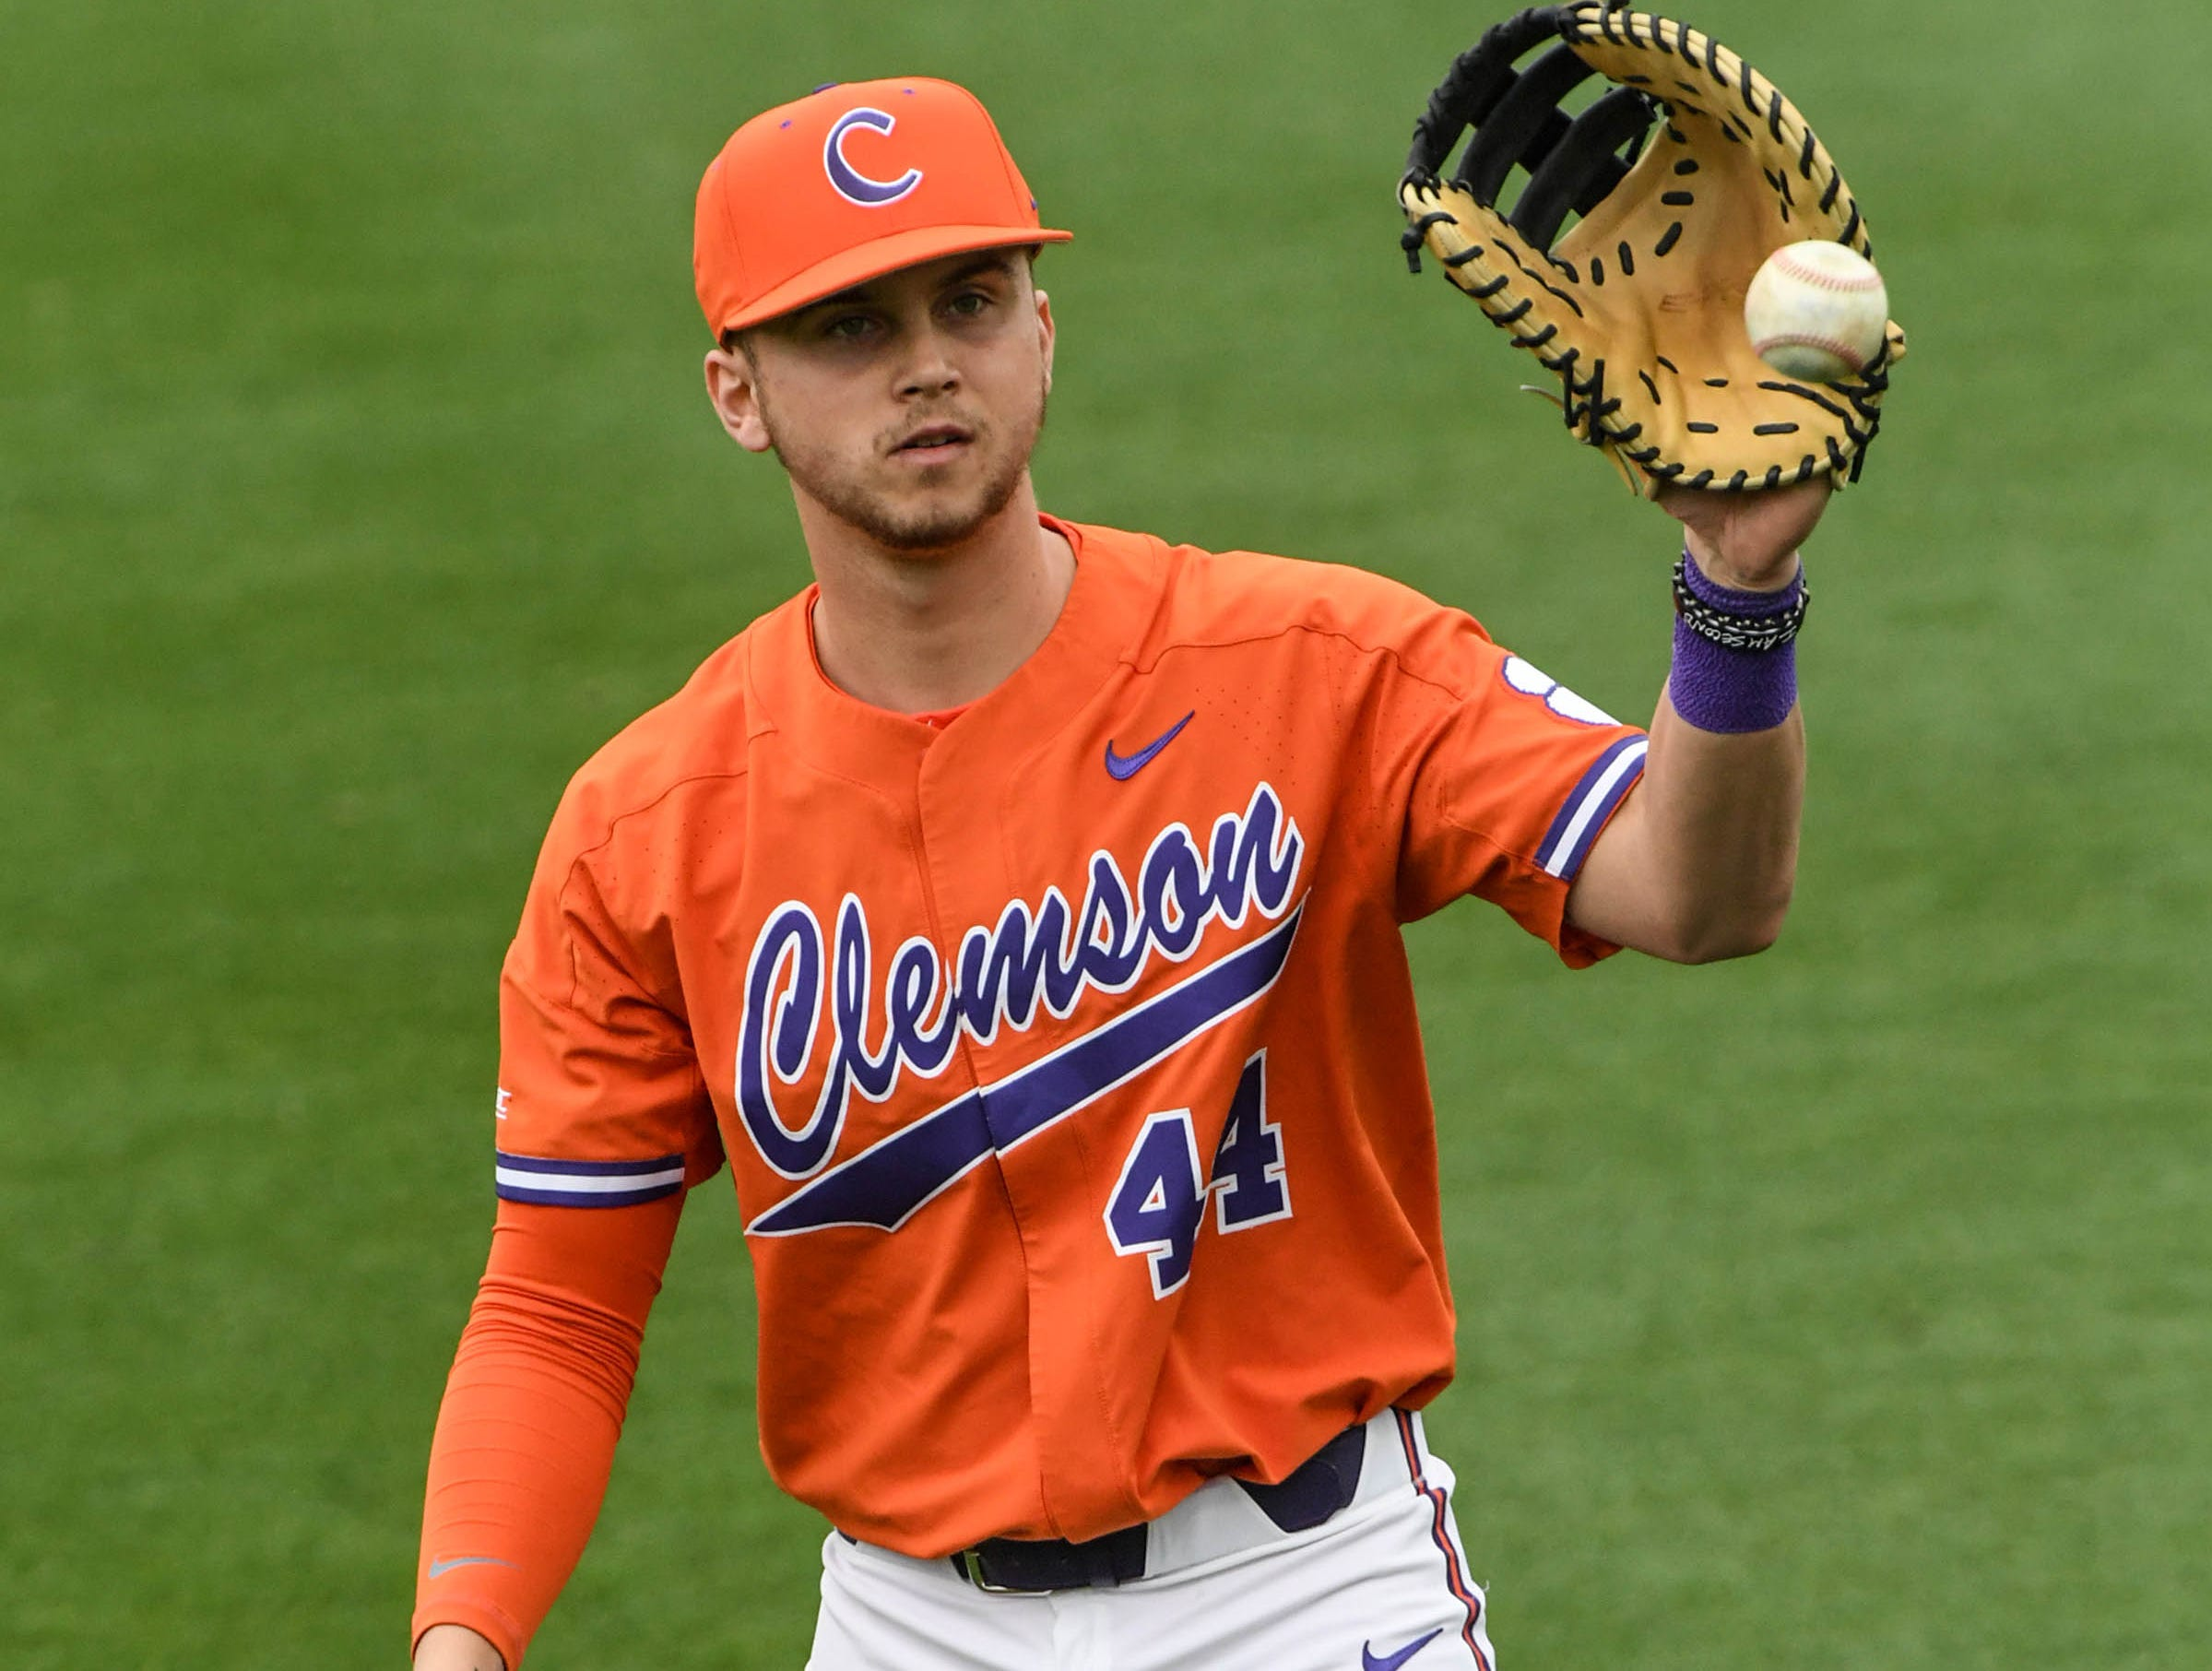 Clemson freshman Bryar Hawkins(44) warms up before the game with South Alabama at Doug Kingsmore Stadium in Clemson Friday, February 15, 2019.